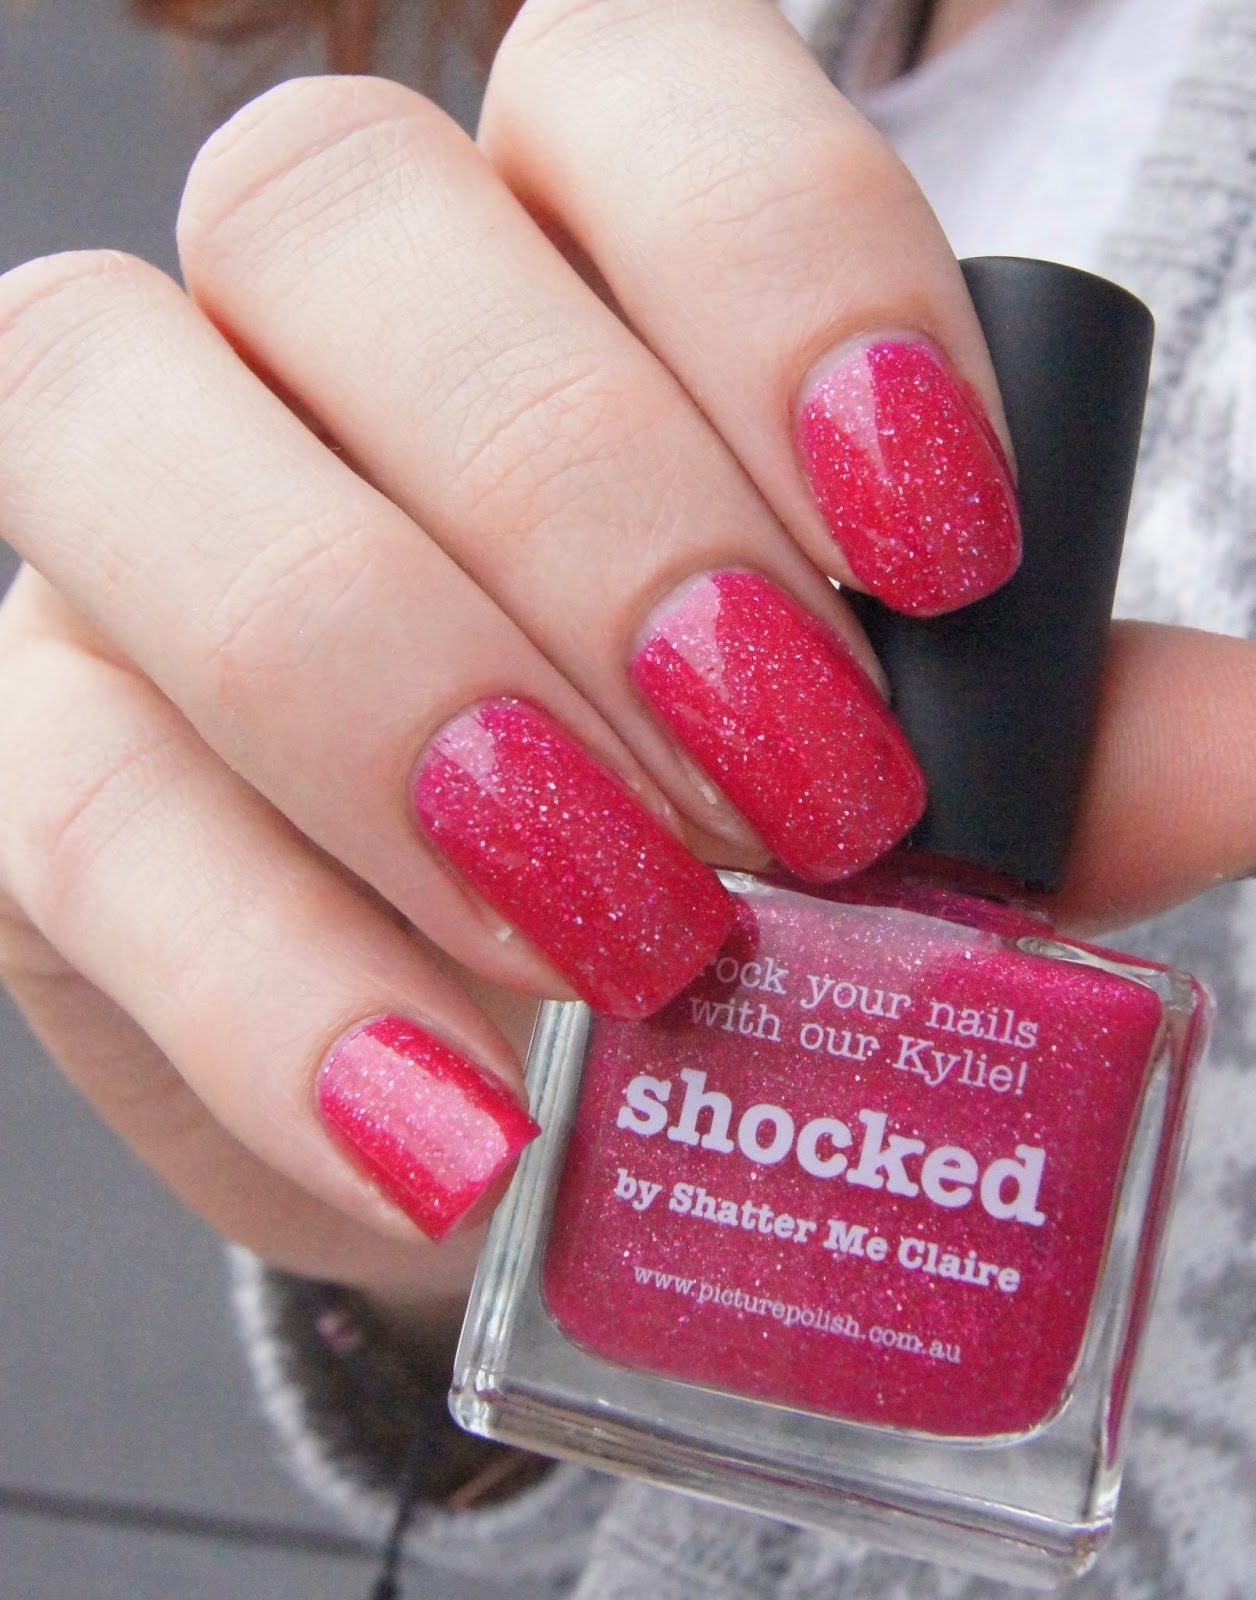 shocked picture polish